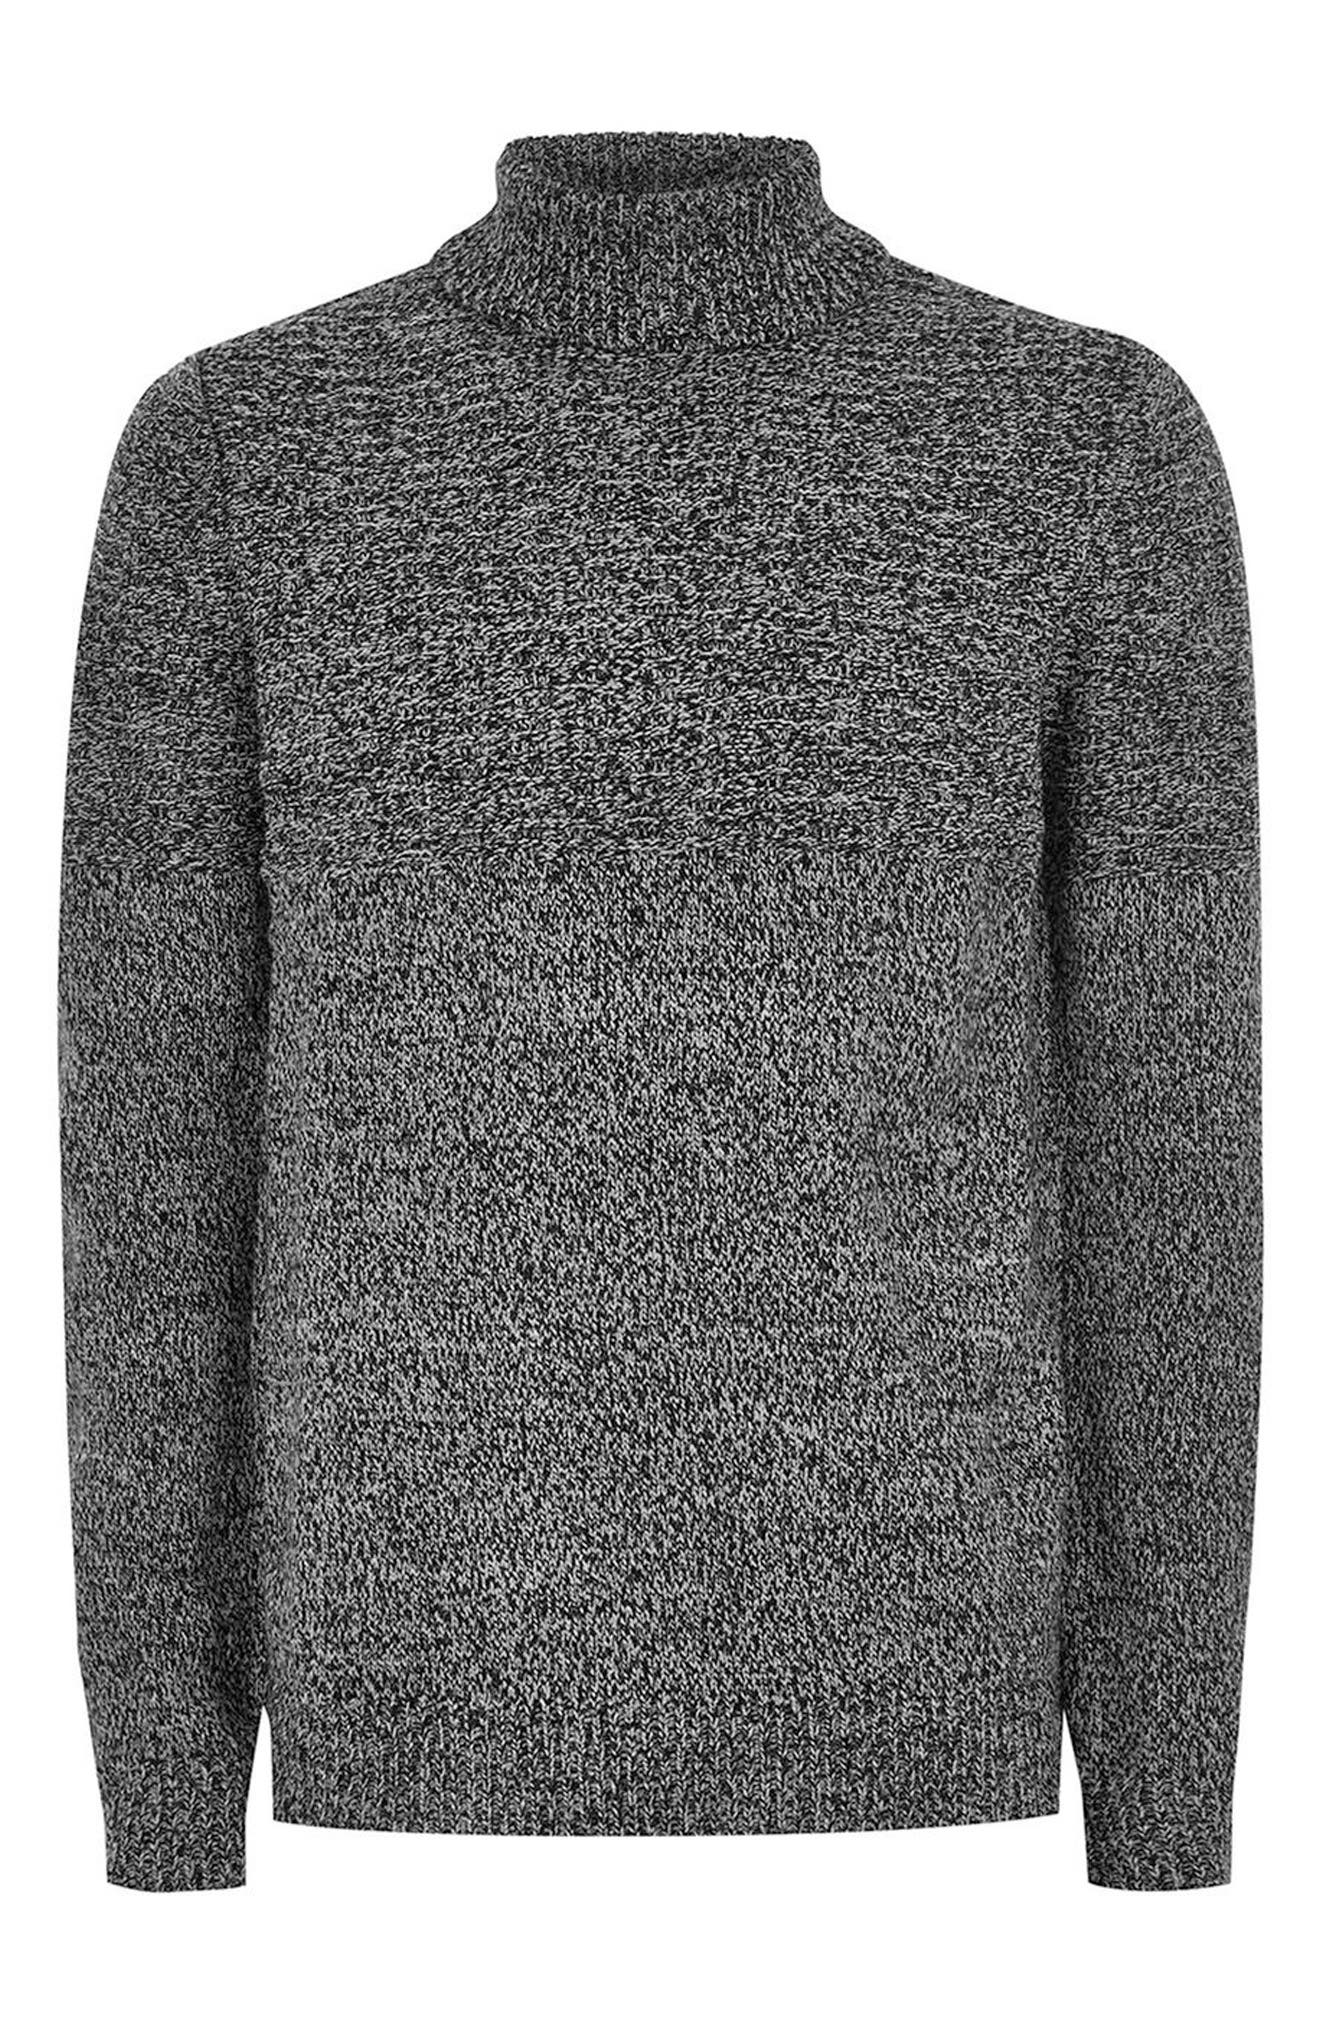 Twist Roll Neck Sweater,                             Alternate thumbnail 3, color,